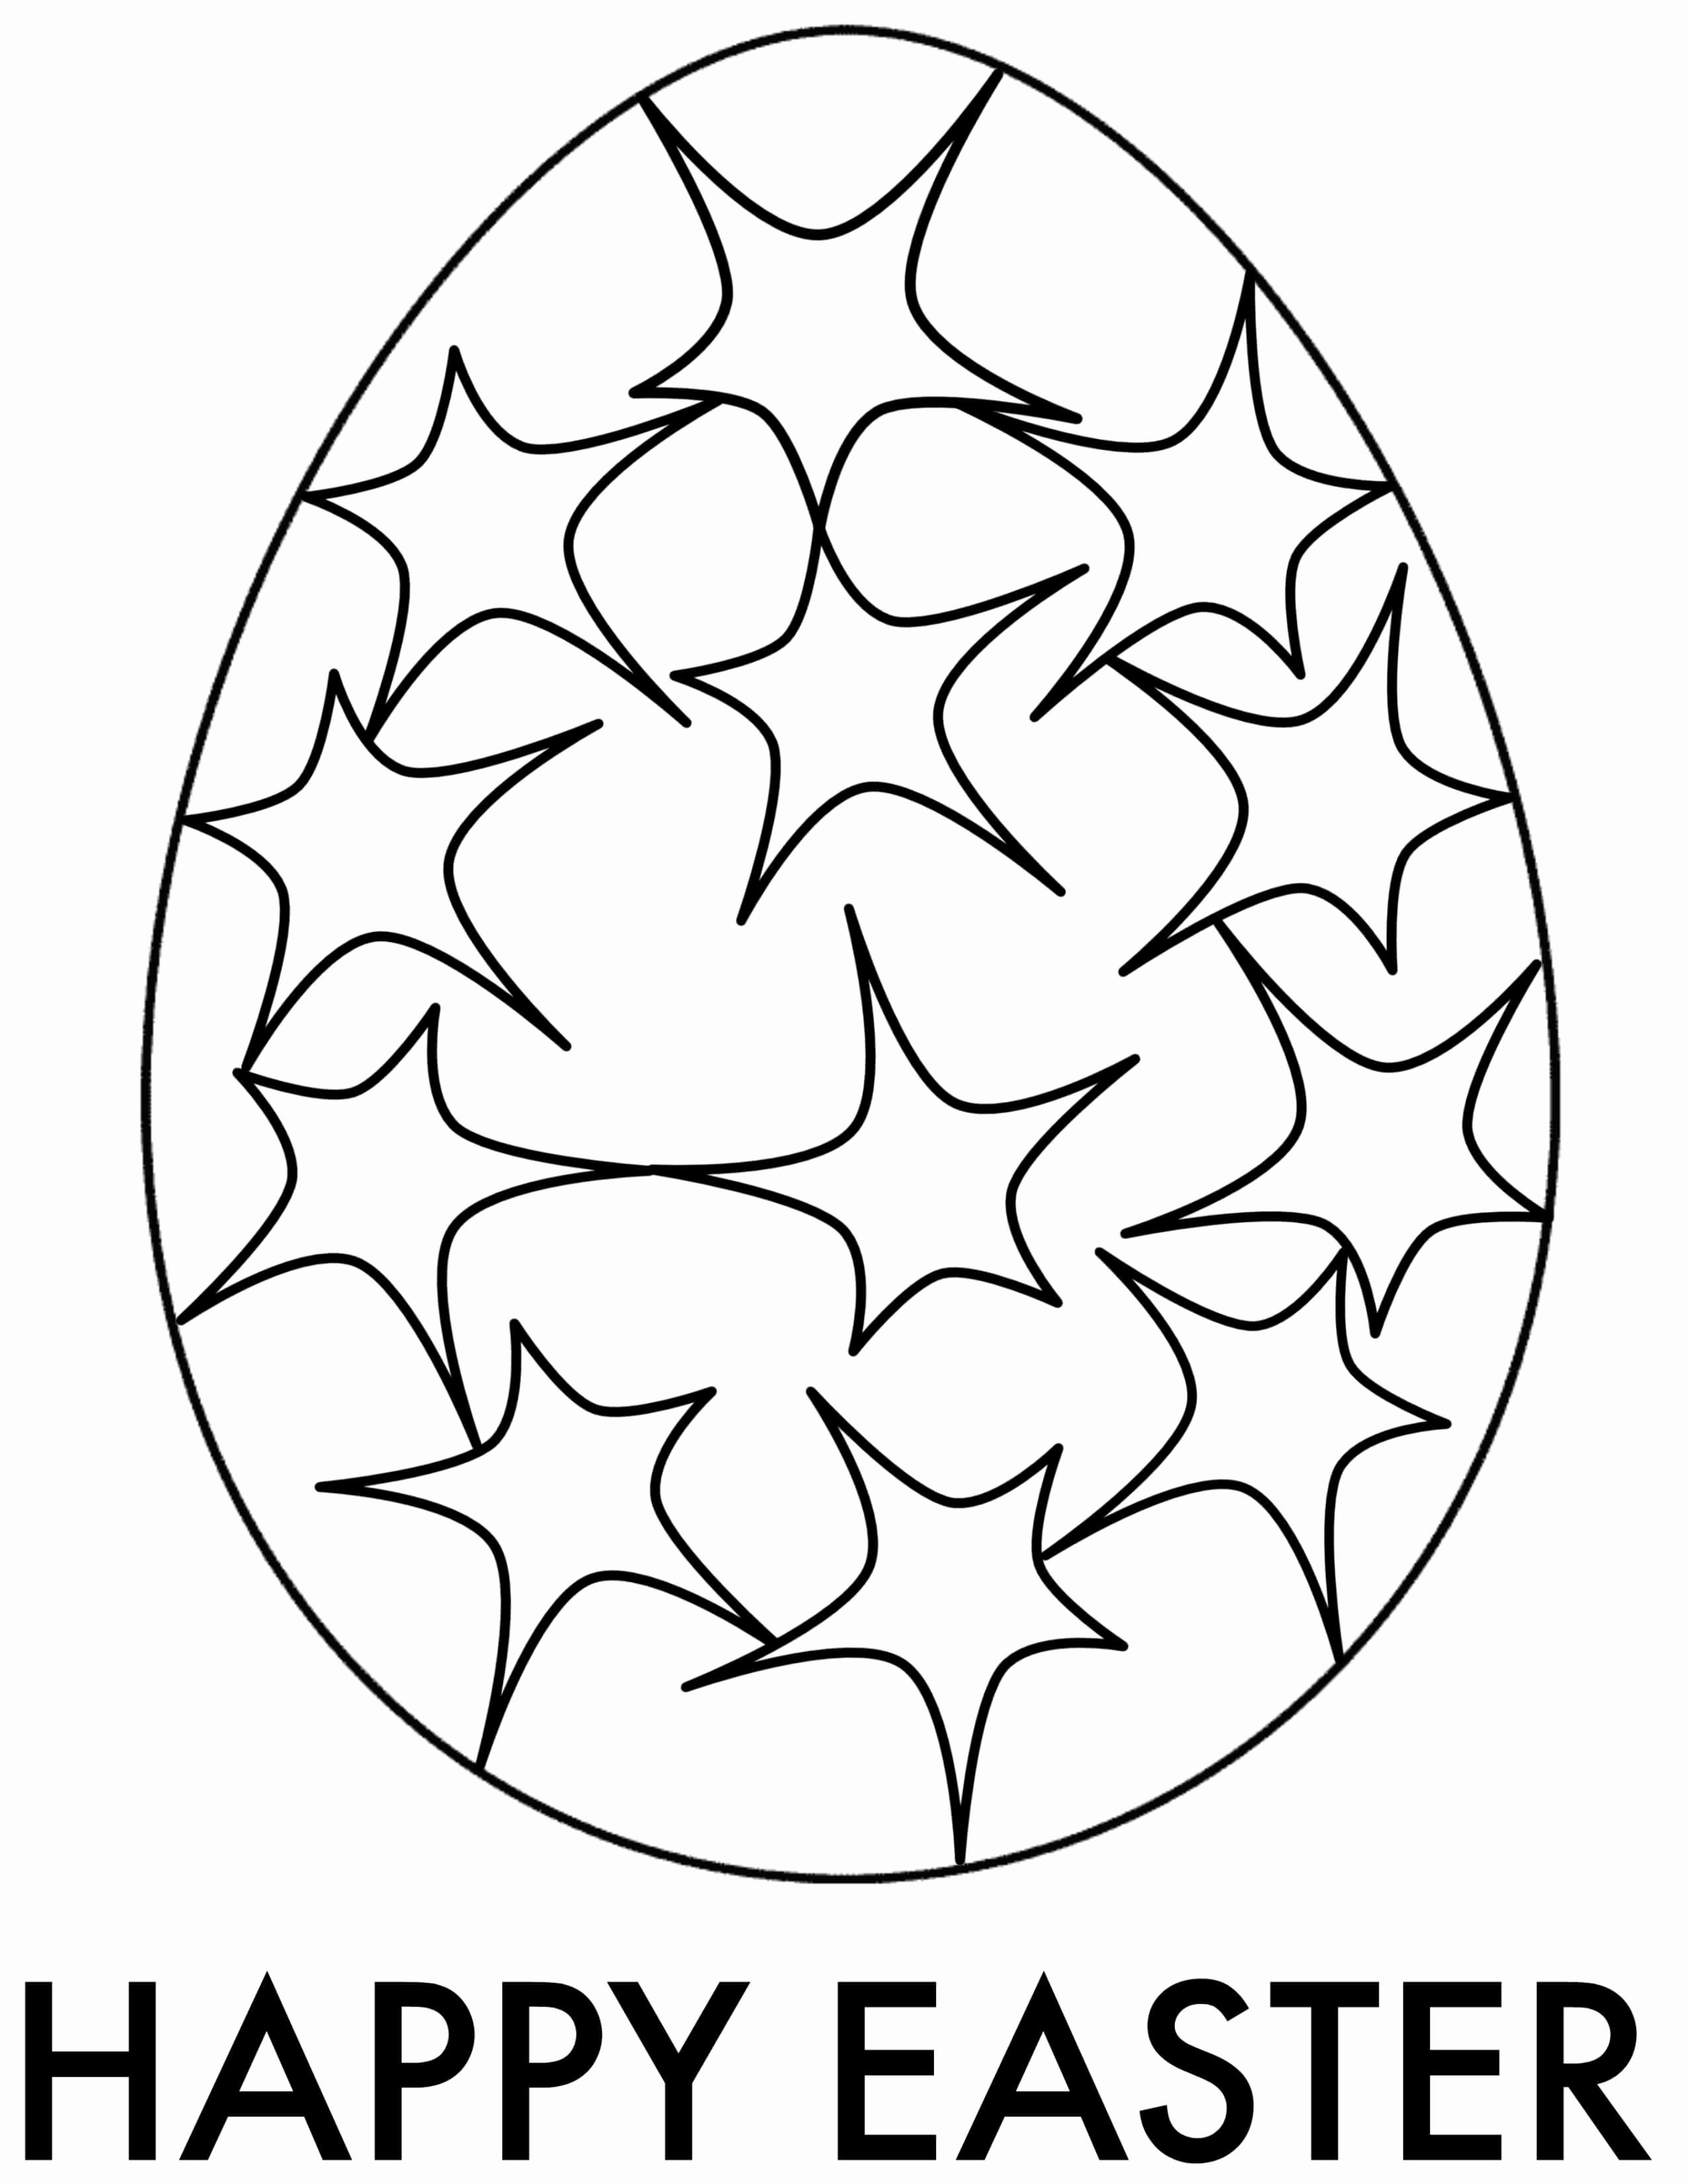 Easter Egg Hunt Coloring Pages Coloring Eggs Coloring Easter Eggs Easter Egg Coloring Pages